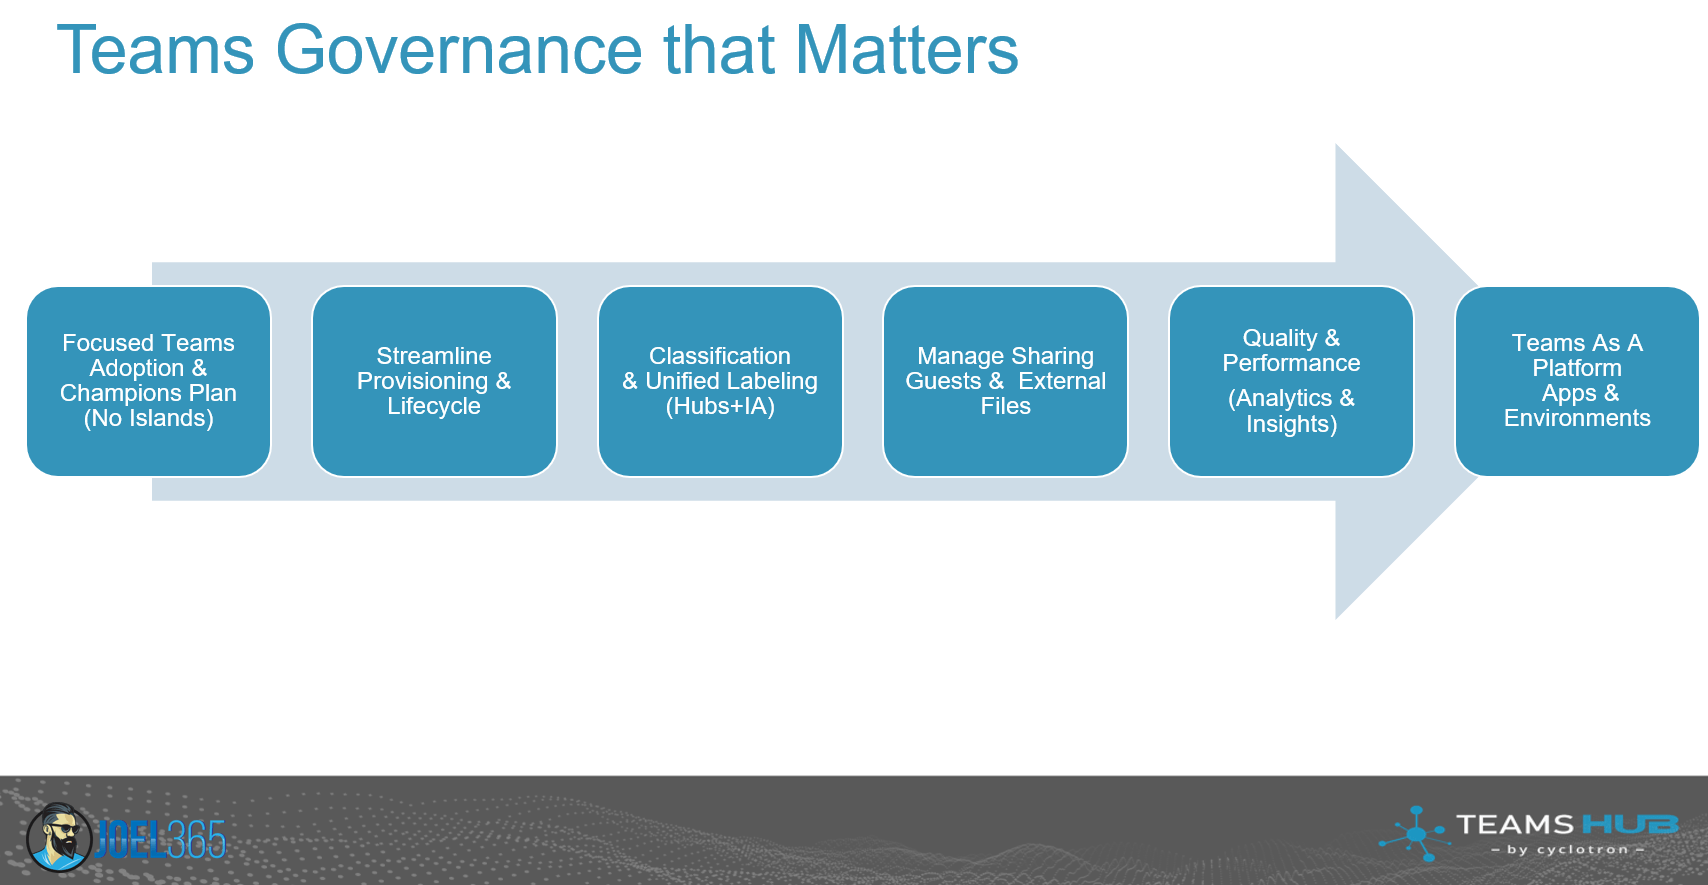 Teams Governance: 6 Keys to What Really Matters